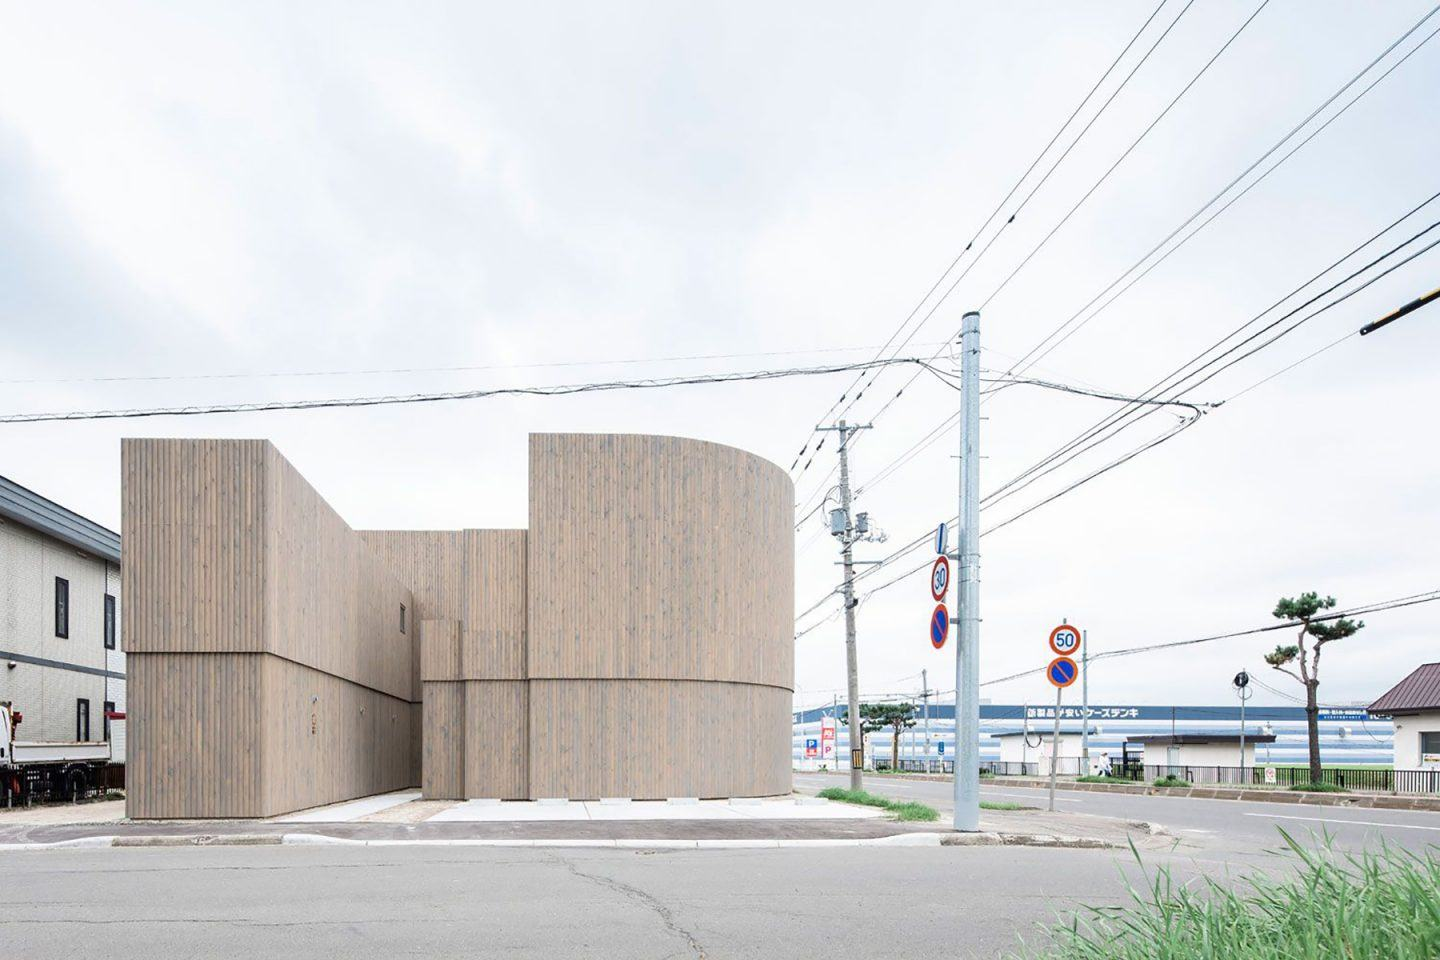 IGNANT-Architecture-Jun-Igarashi-Corridor-Of-The-Fold-1